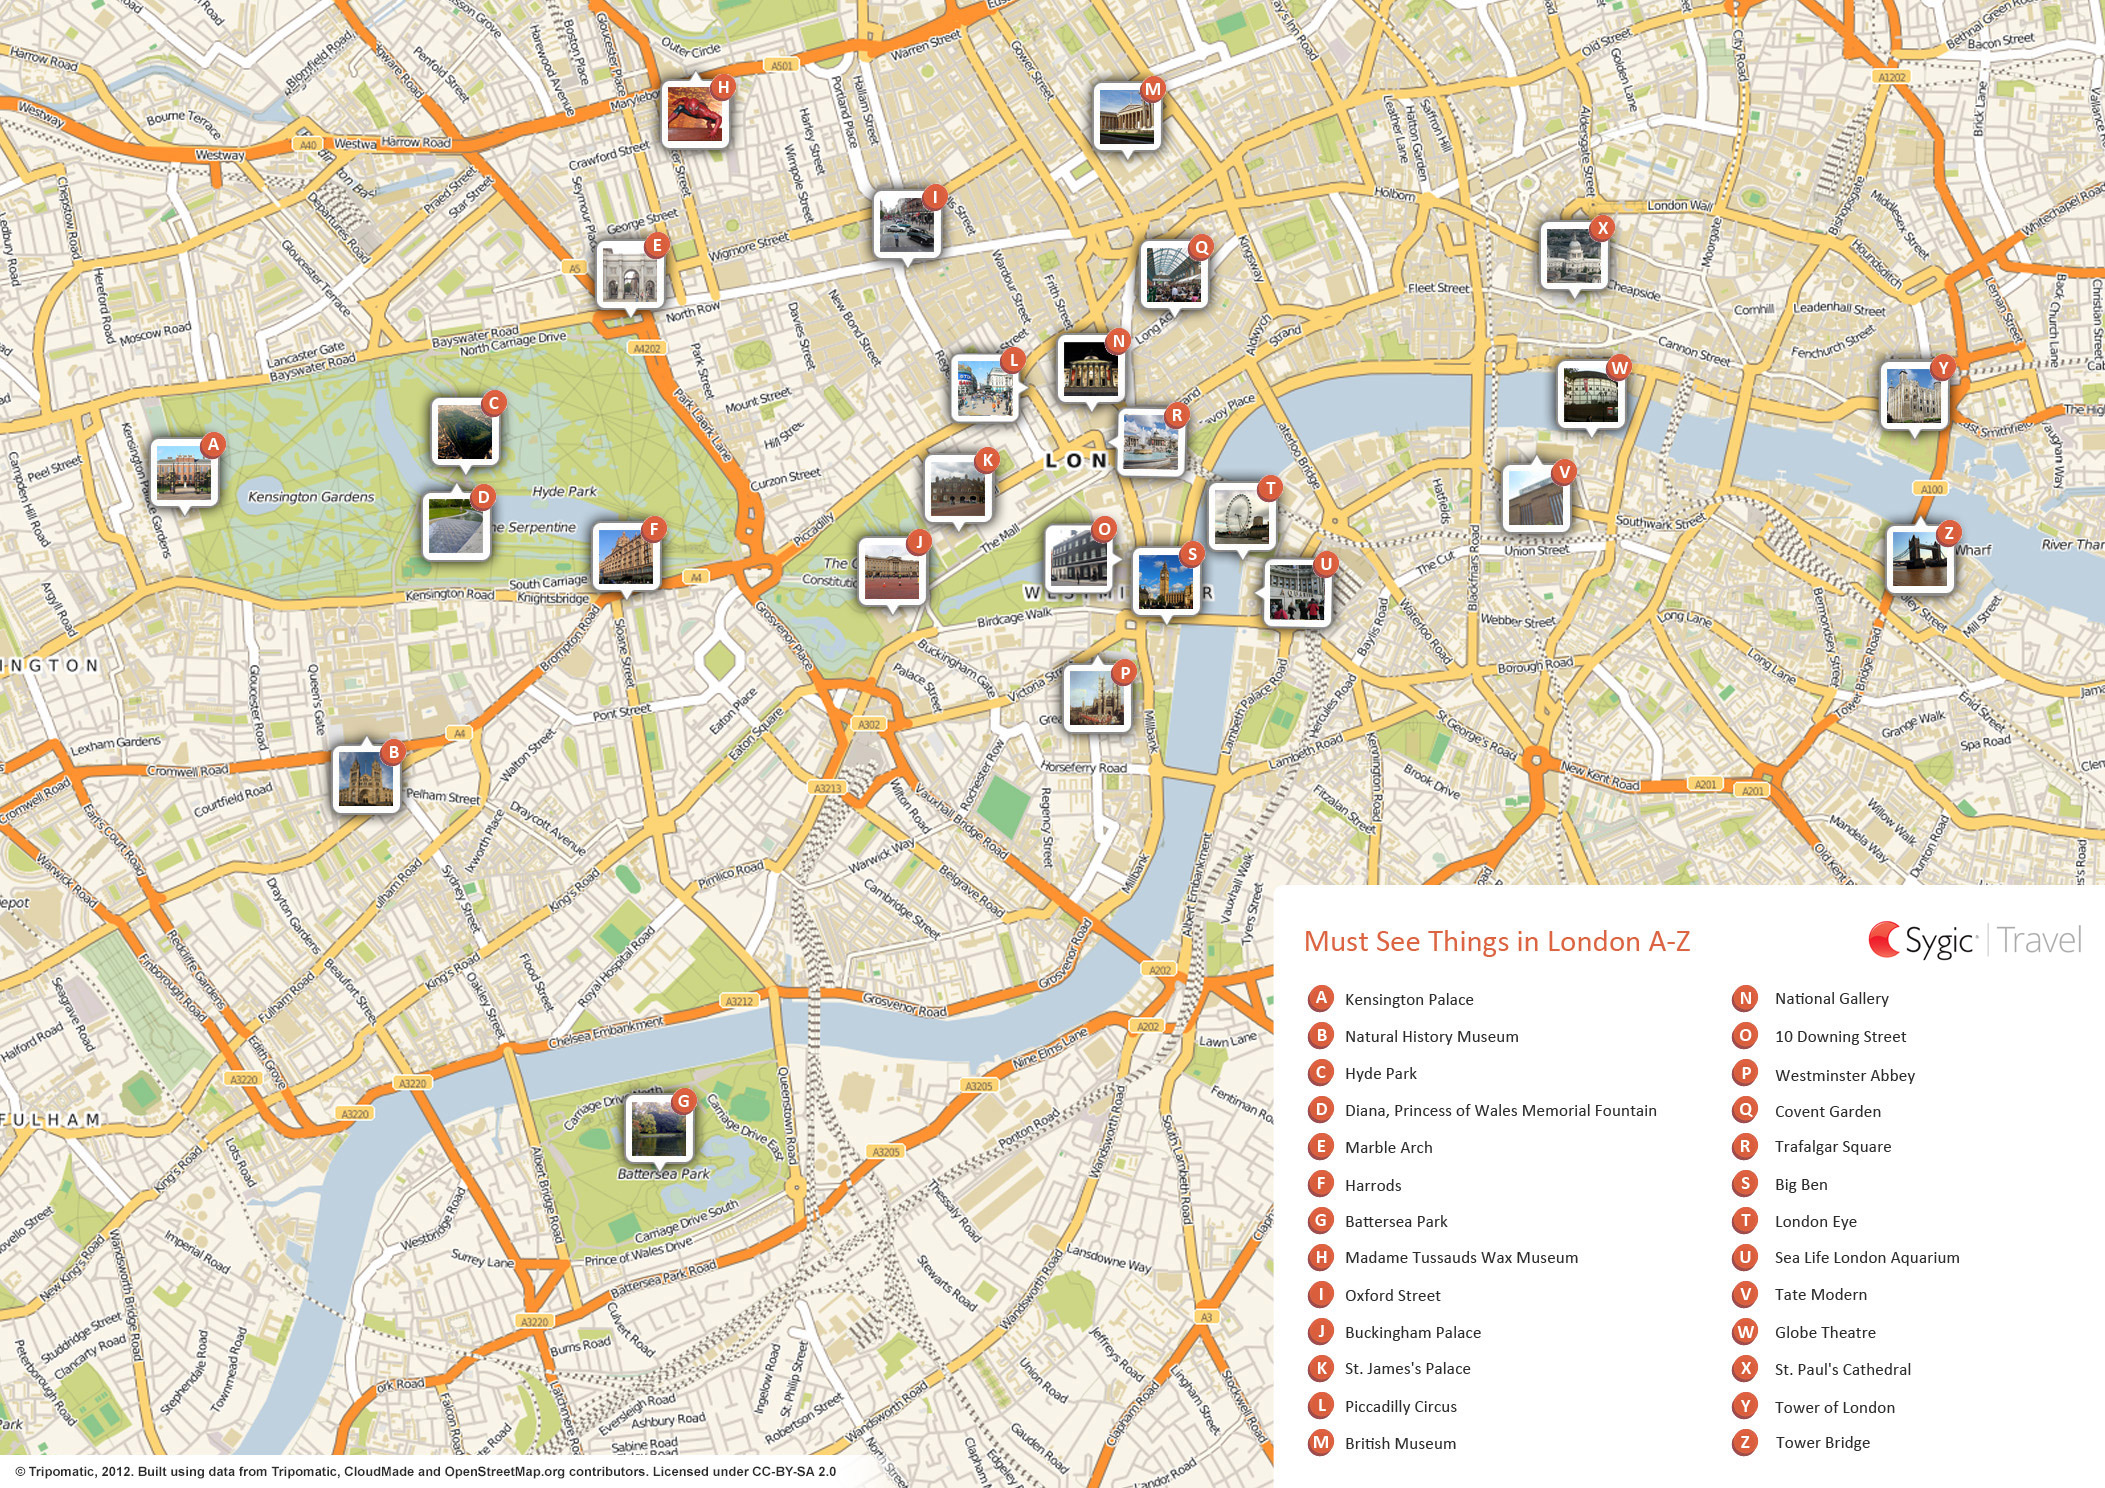 London Printable Tourist Map – Map Of London England With Tourist Attractions